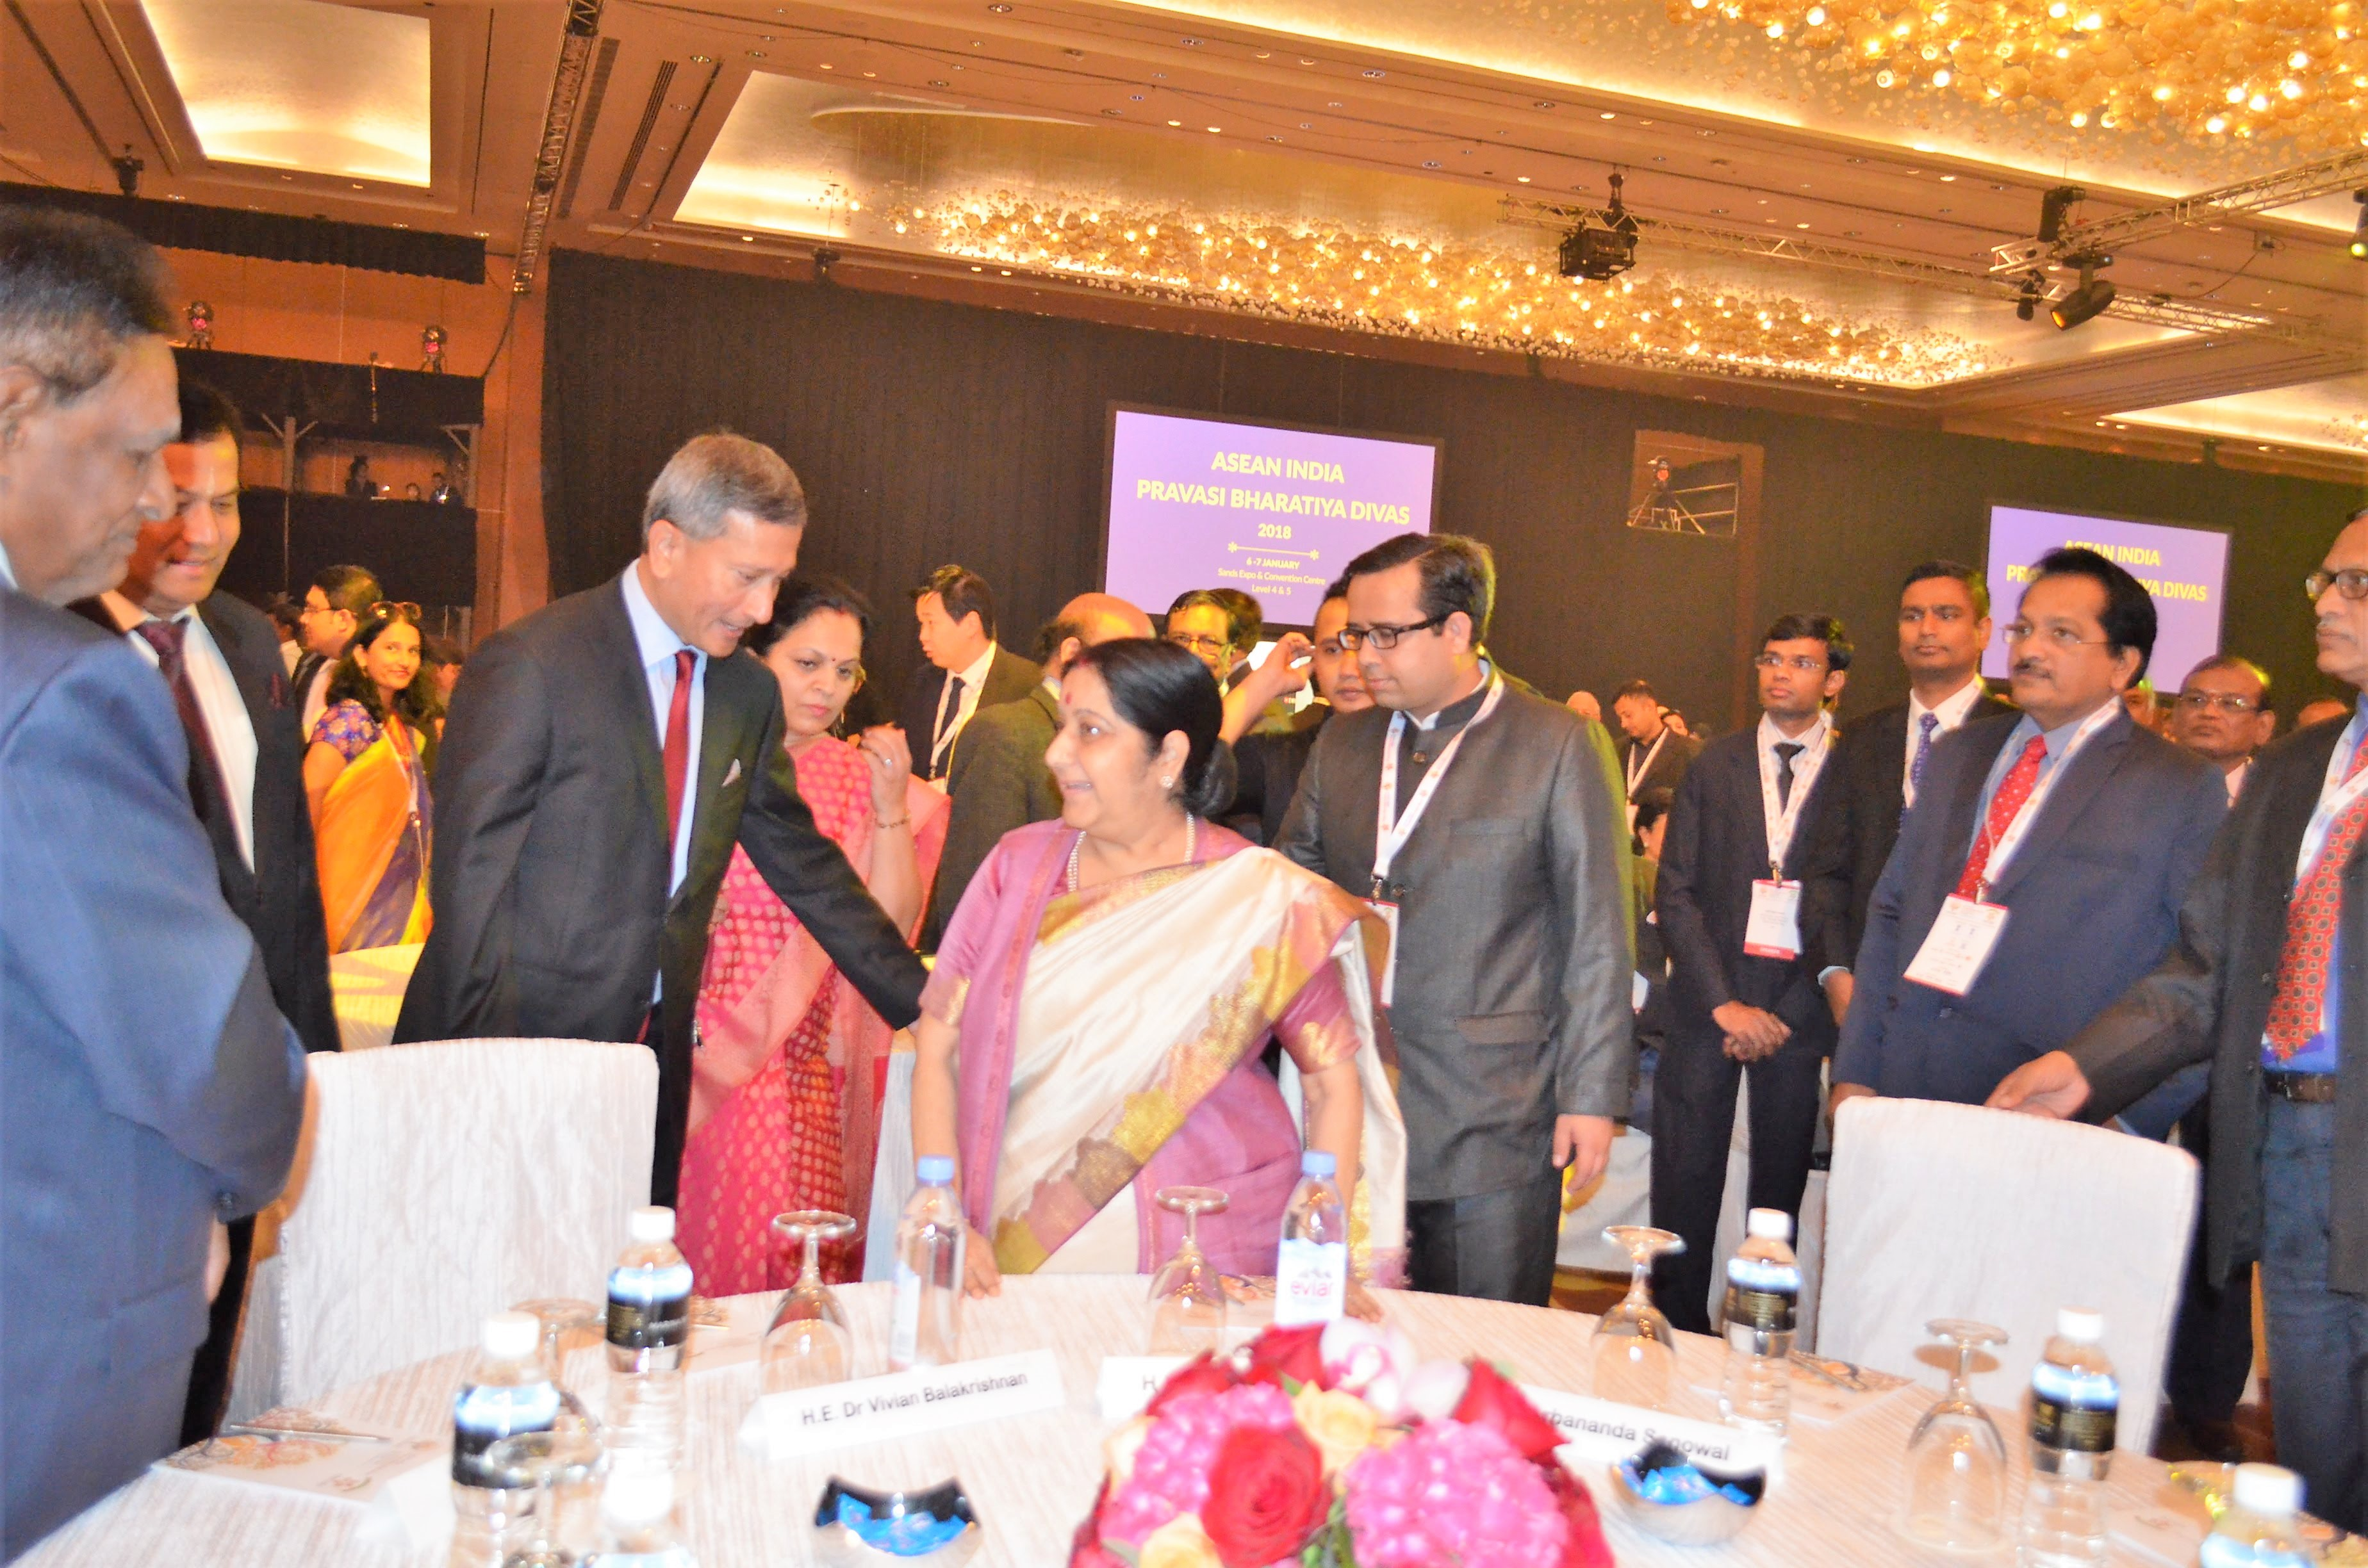 Singapore's Minister for Foreign Affairs Dr Vivian Balakrishnan with Indian EAM Sushma Swaraj before the opening address on Day 2 of the PBD